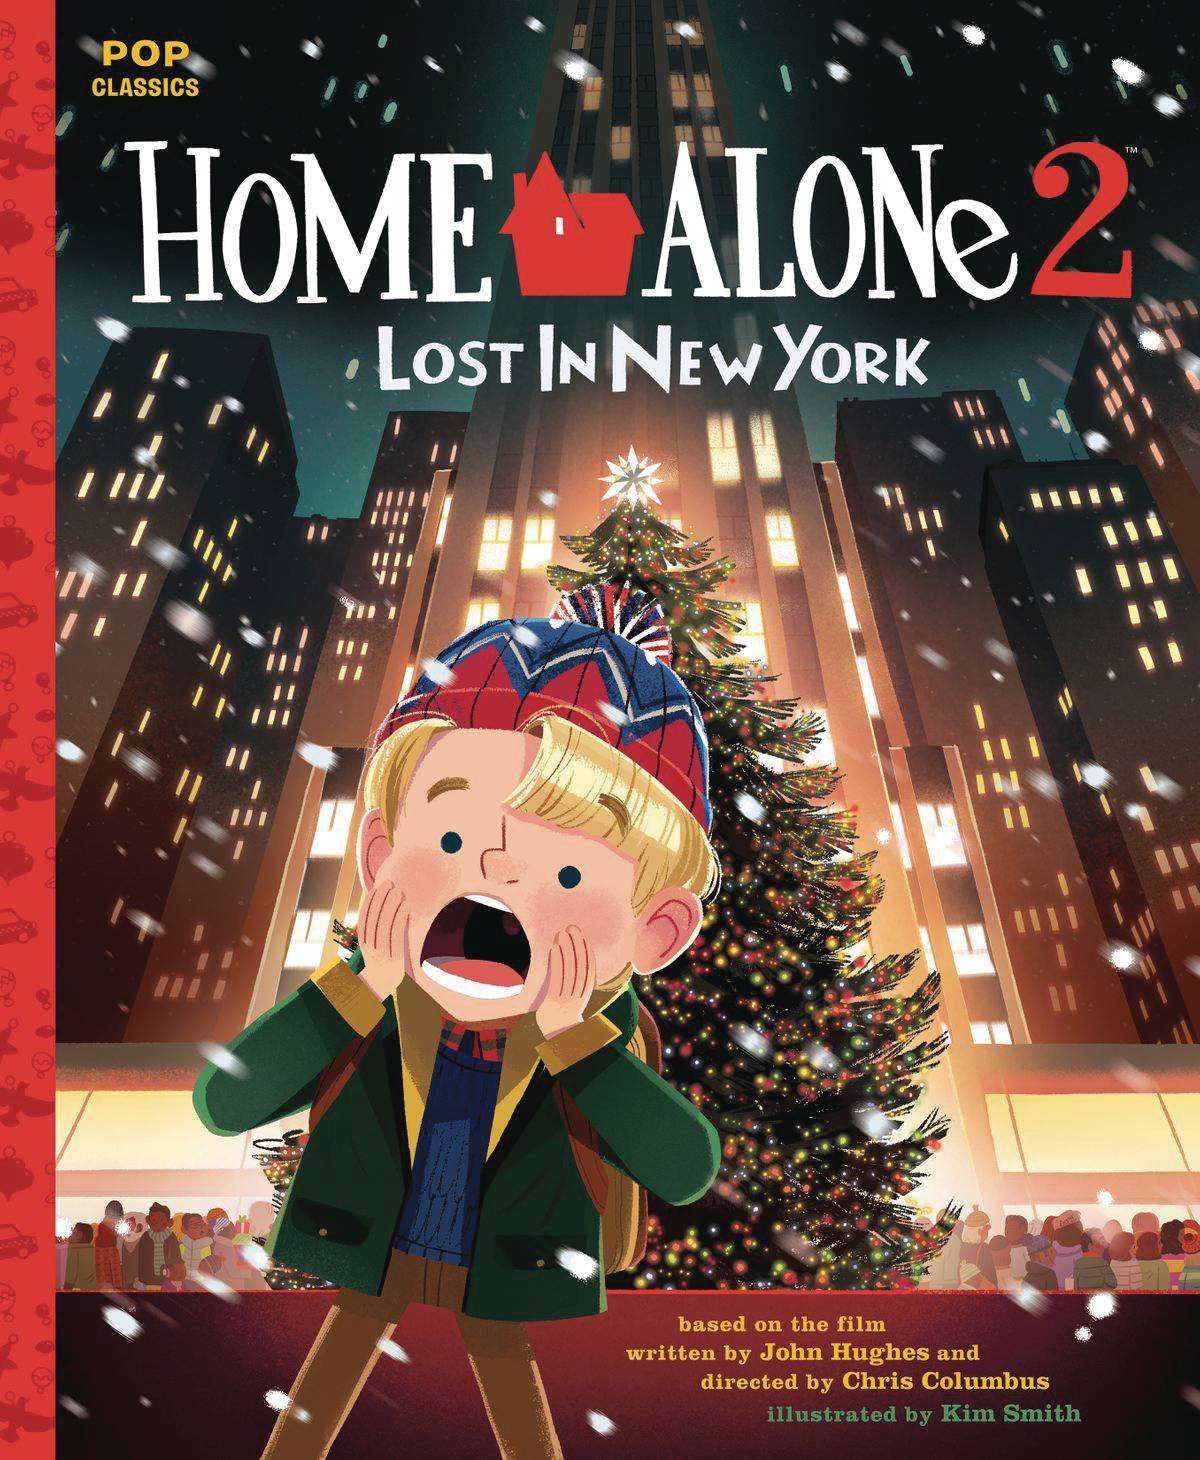 HOME ALONE 2 LOST IN NEW YORK POP CLASSIC ILLUS STORYBOOK